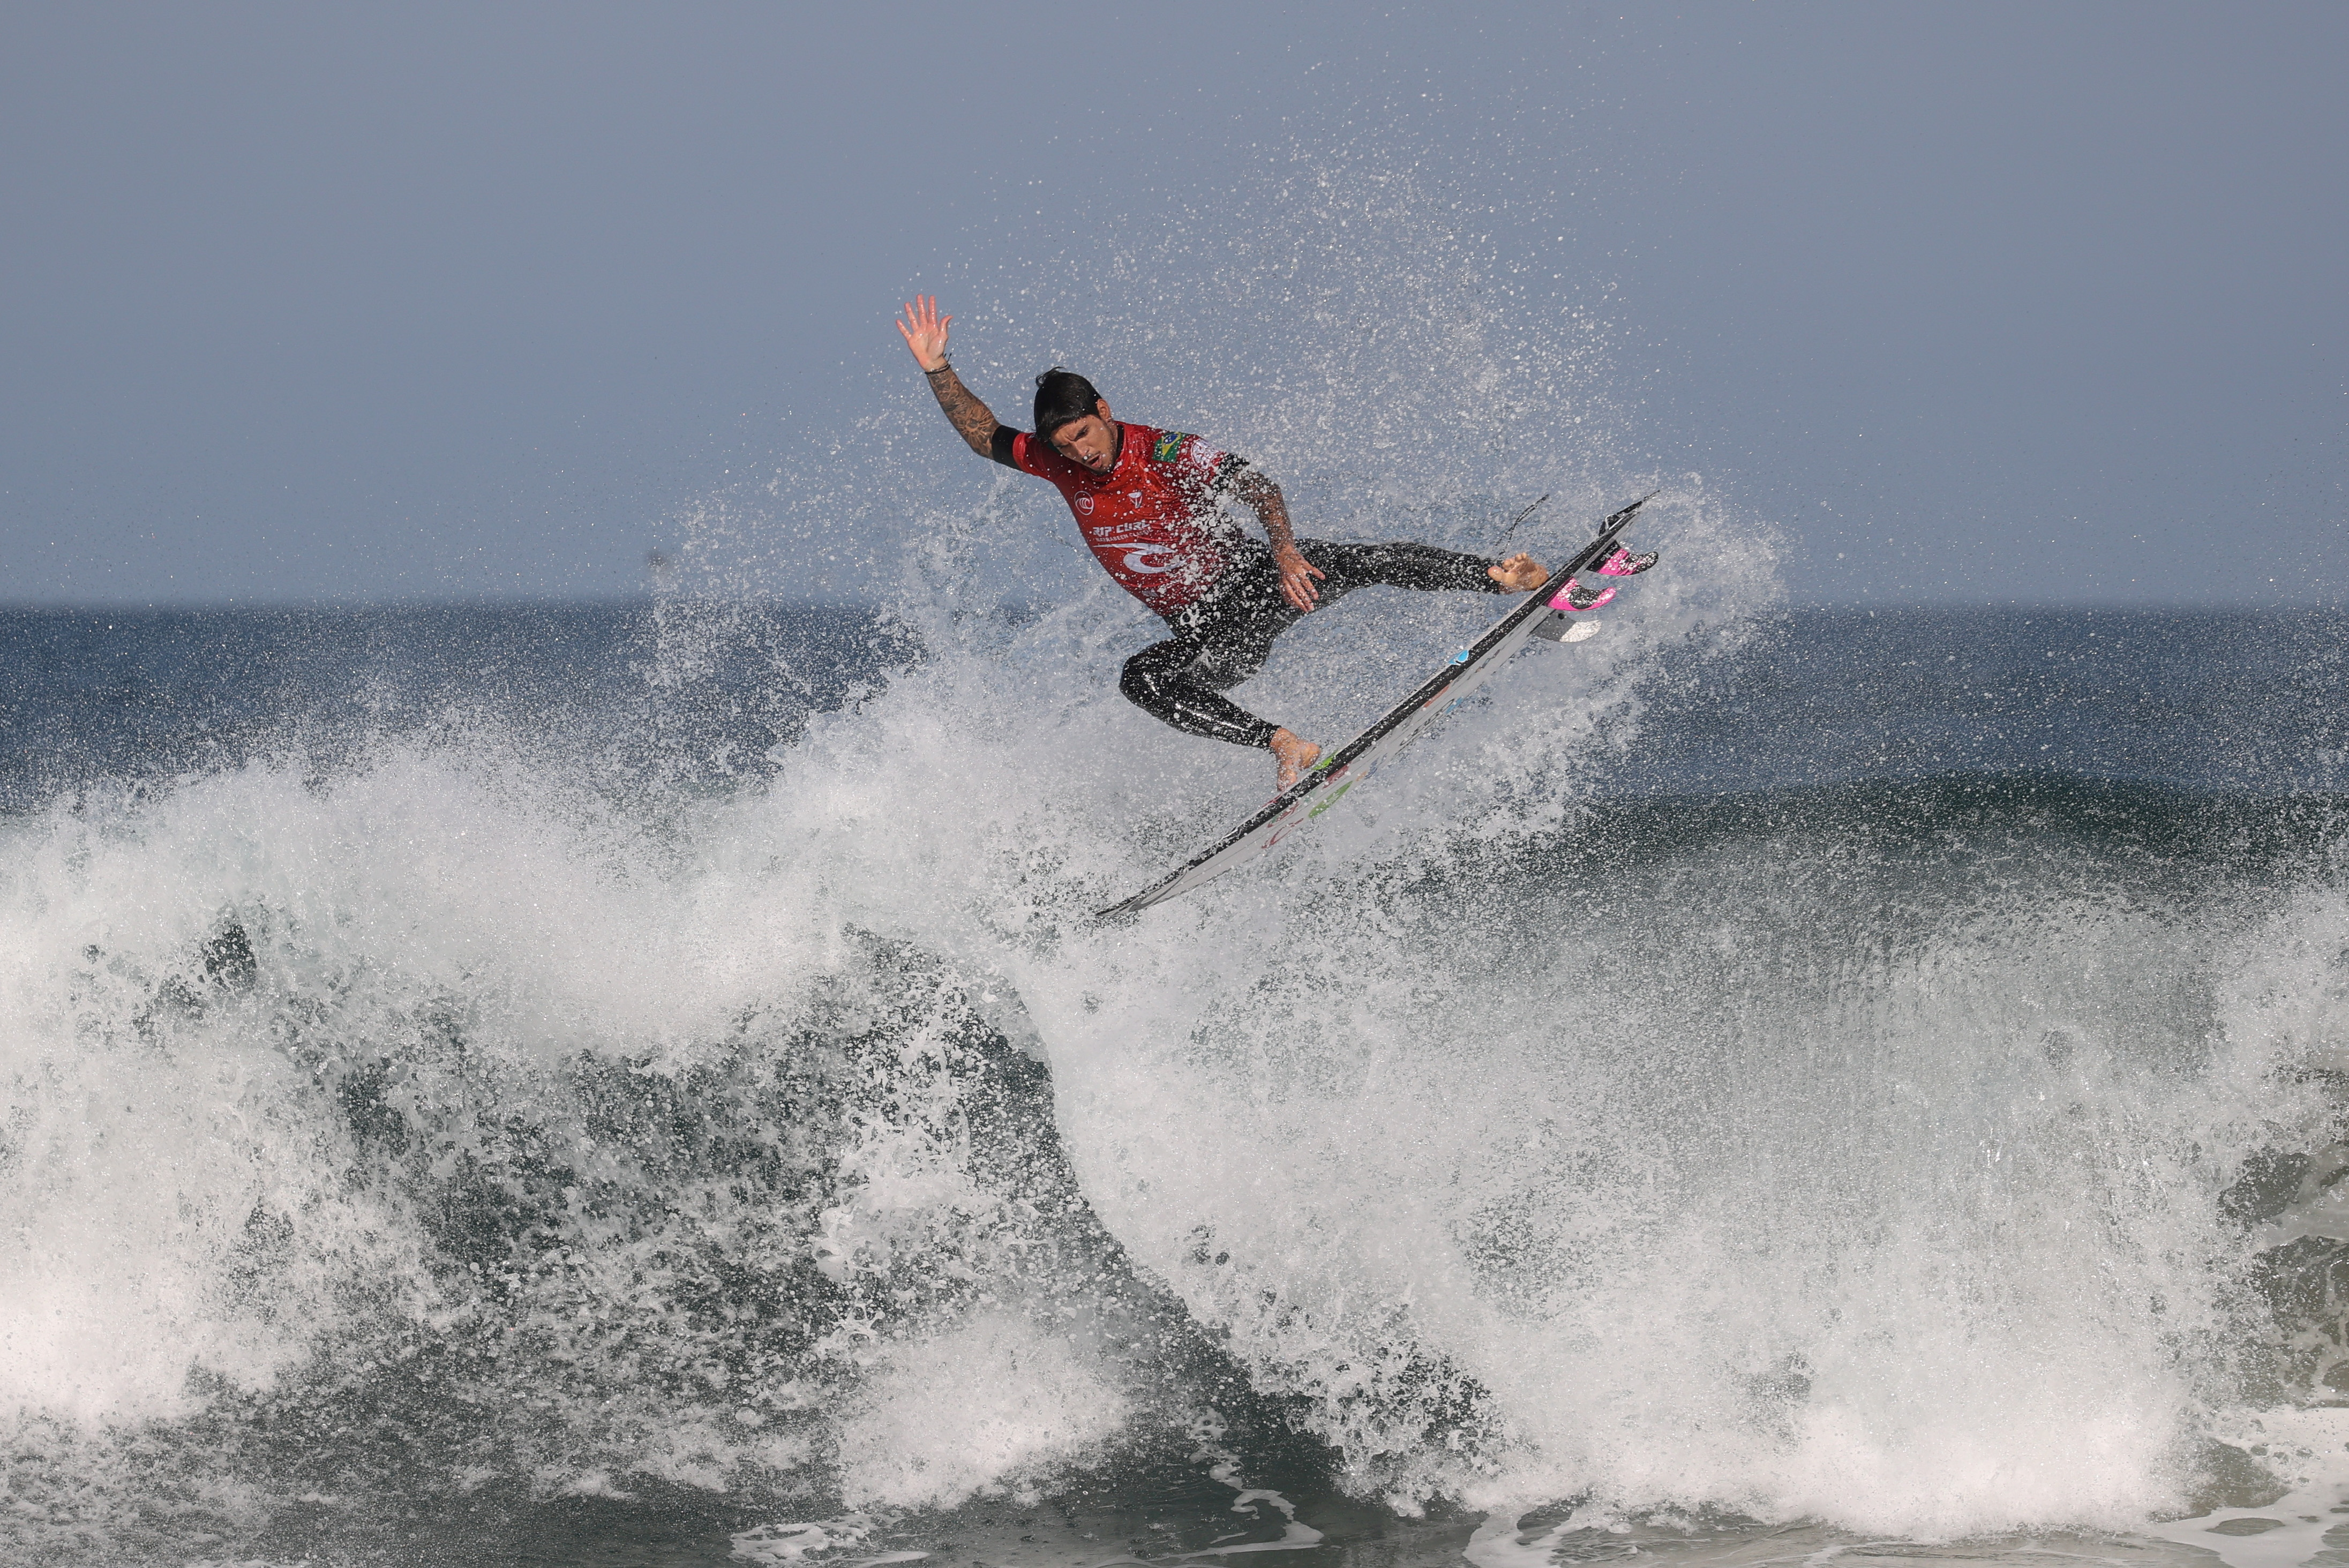 Surfer Gabriel Medina, who is set to represent Brazil at the Tokyo 2020 Summer Olympic Games, competes at the Rip Curl Narrabeen Classic competition in the Narrabeen suburb of northern Sydney, Australia, April 19, 2021.  REUTERS/Loren Elliott/File Photo